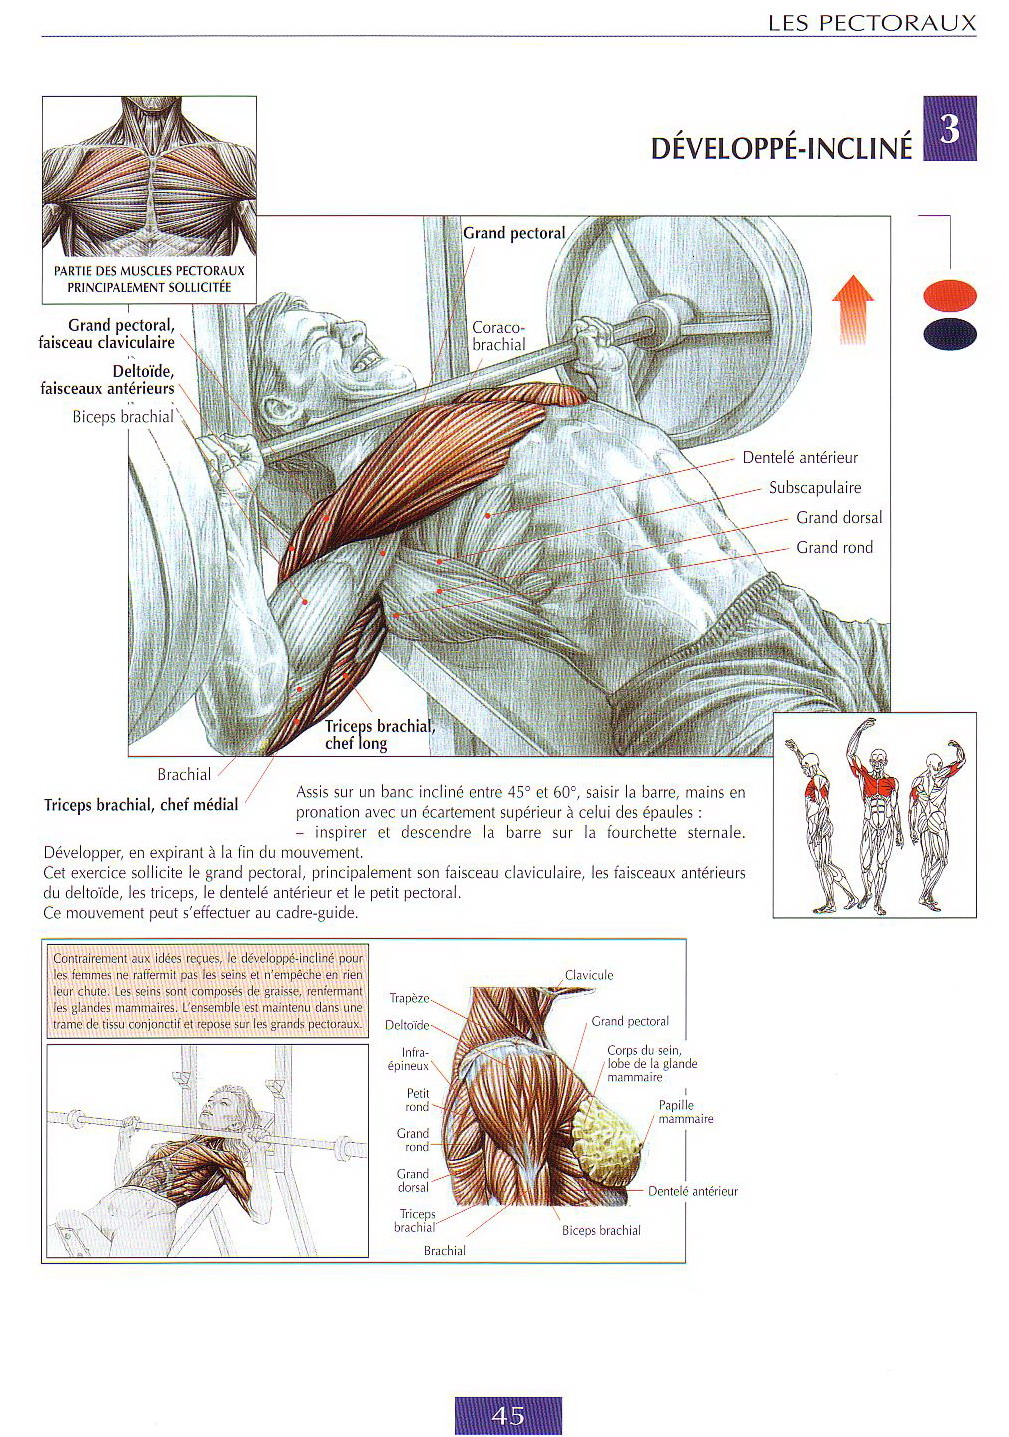 Best chest workouts guide de musculation for Guide musculation